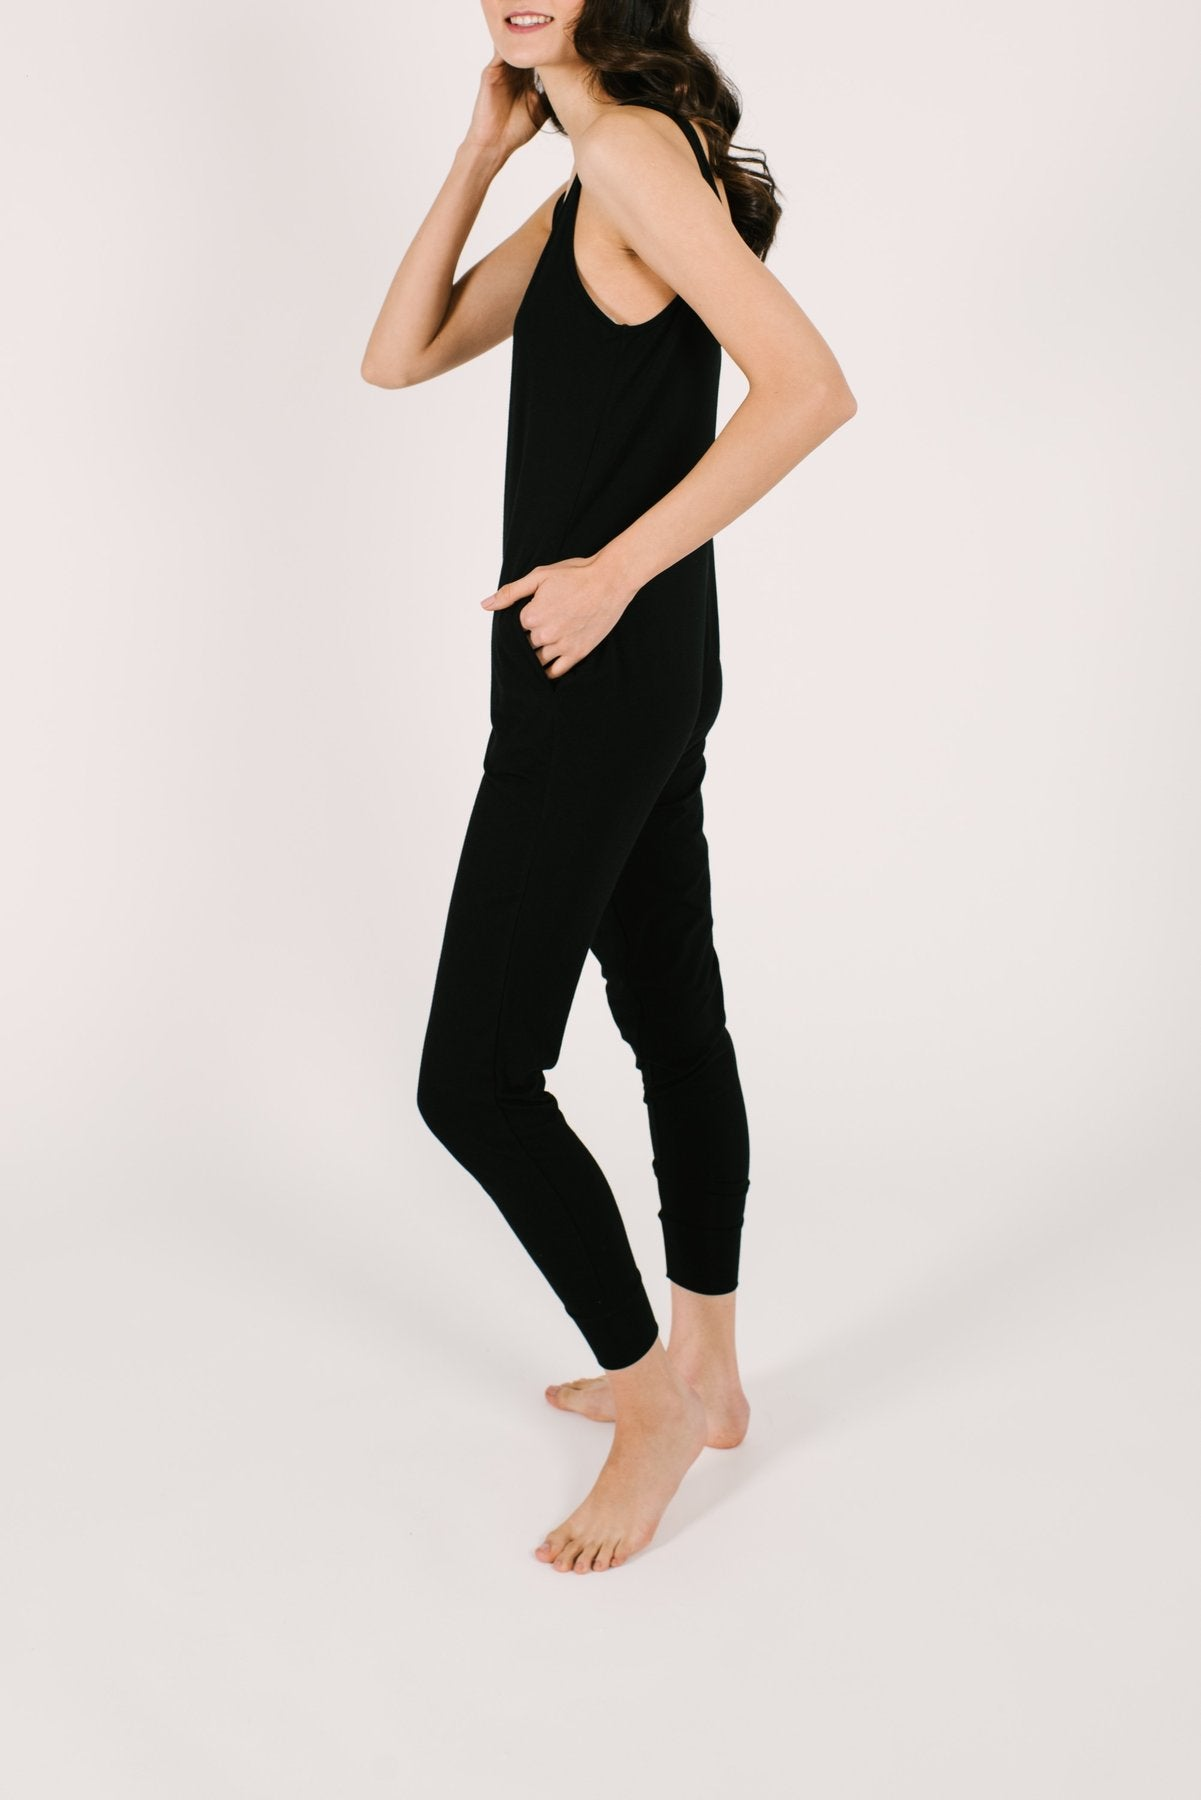 Smash+Tess Midnight Black Tuesday Romper